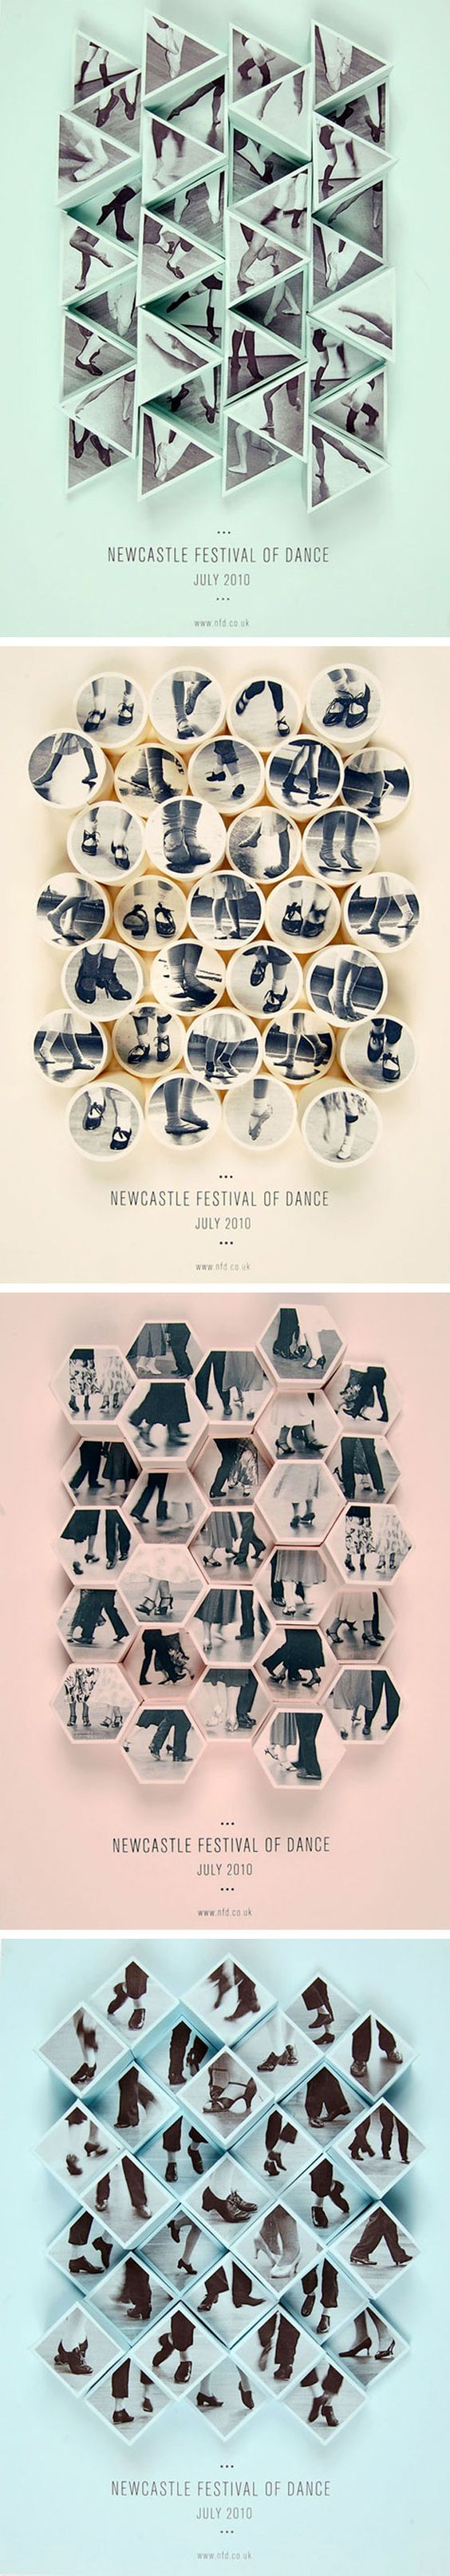 Poster design newcastle - Find This Pin And More On Poster Design By Kristian_mills